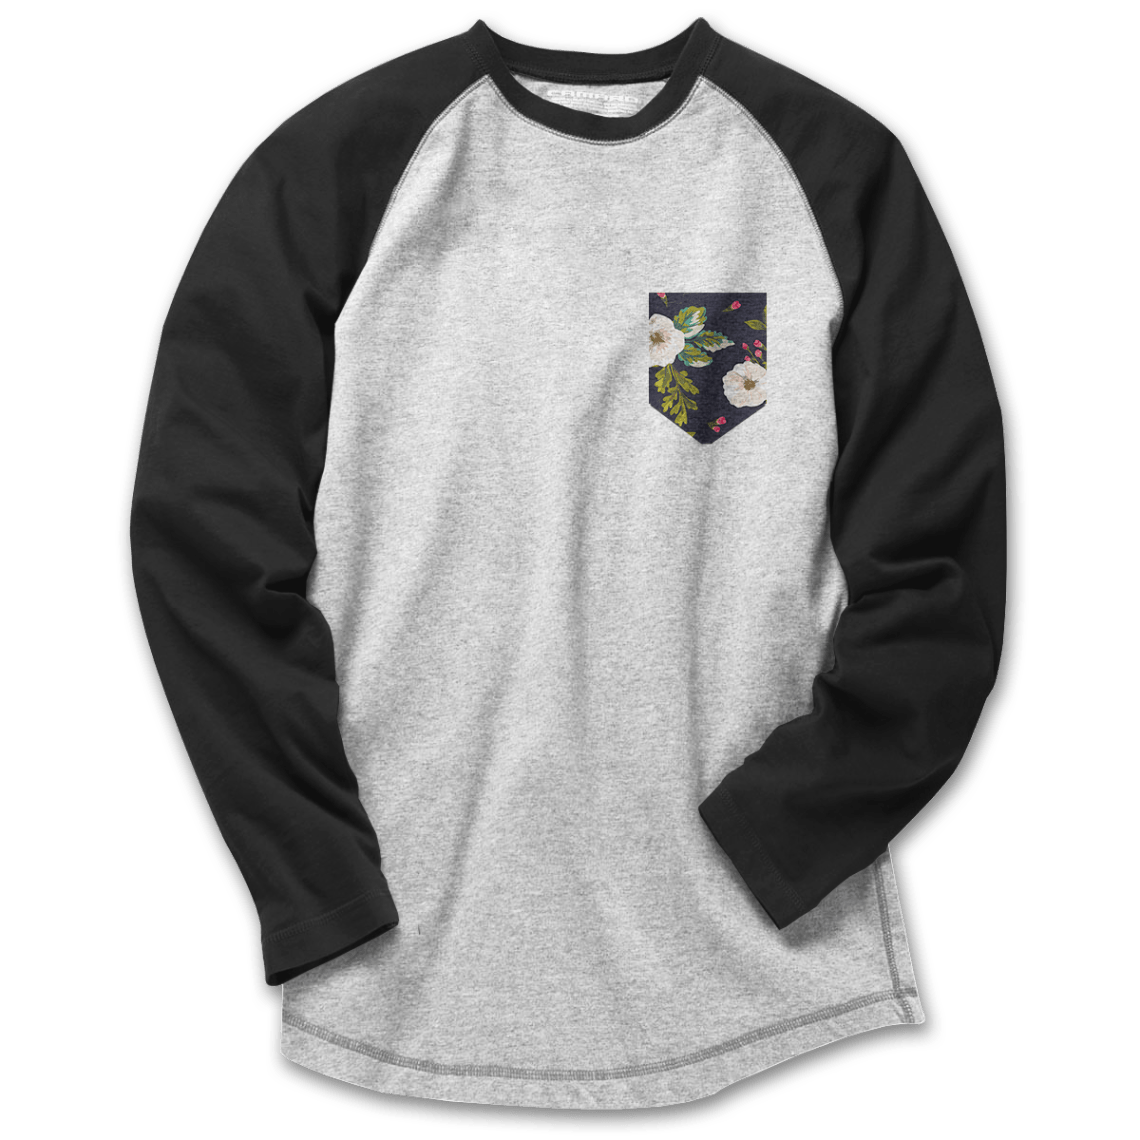 Download Mockup Raglan Cdr Yellowimages